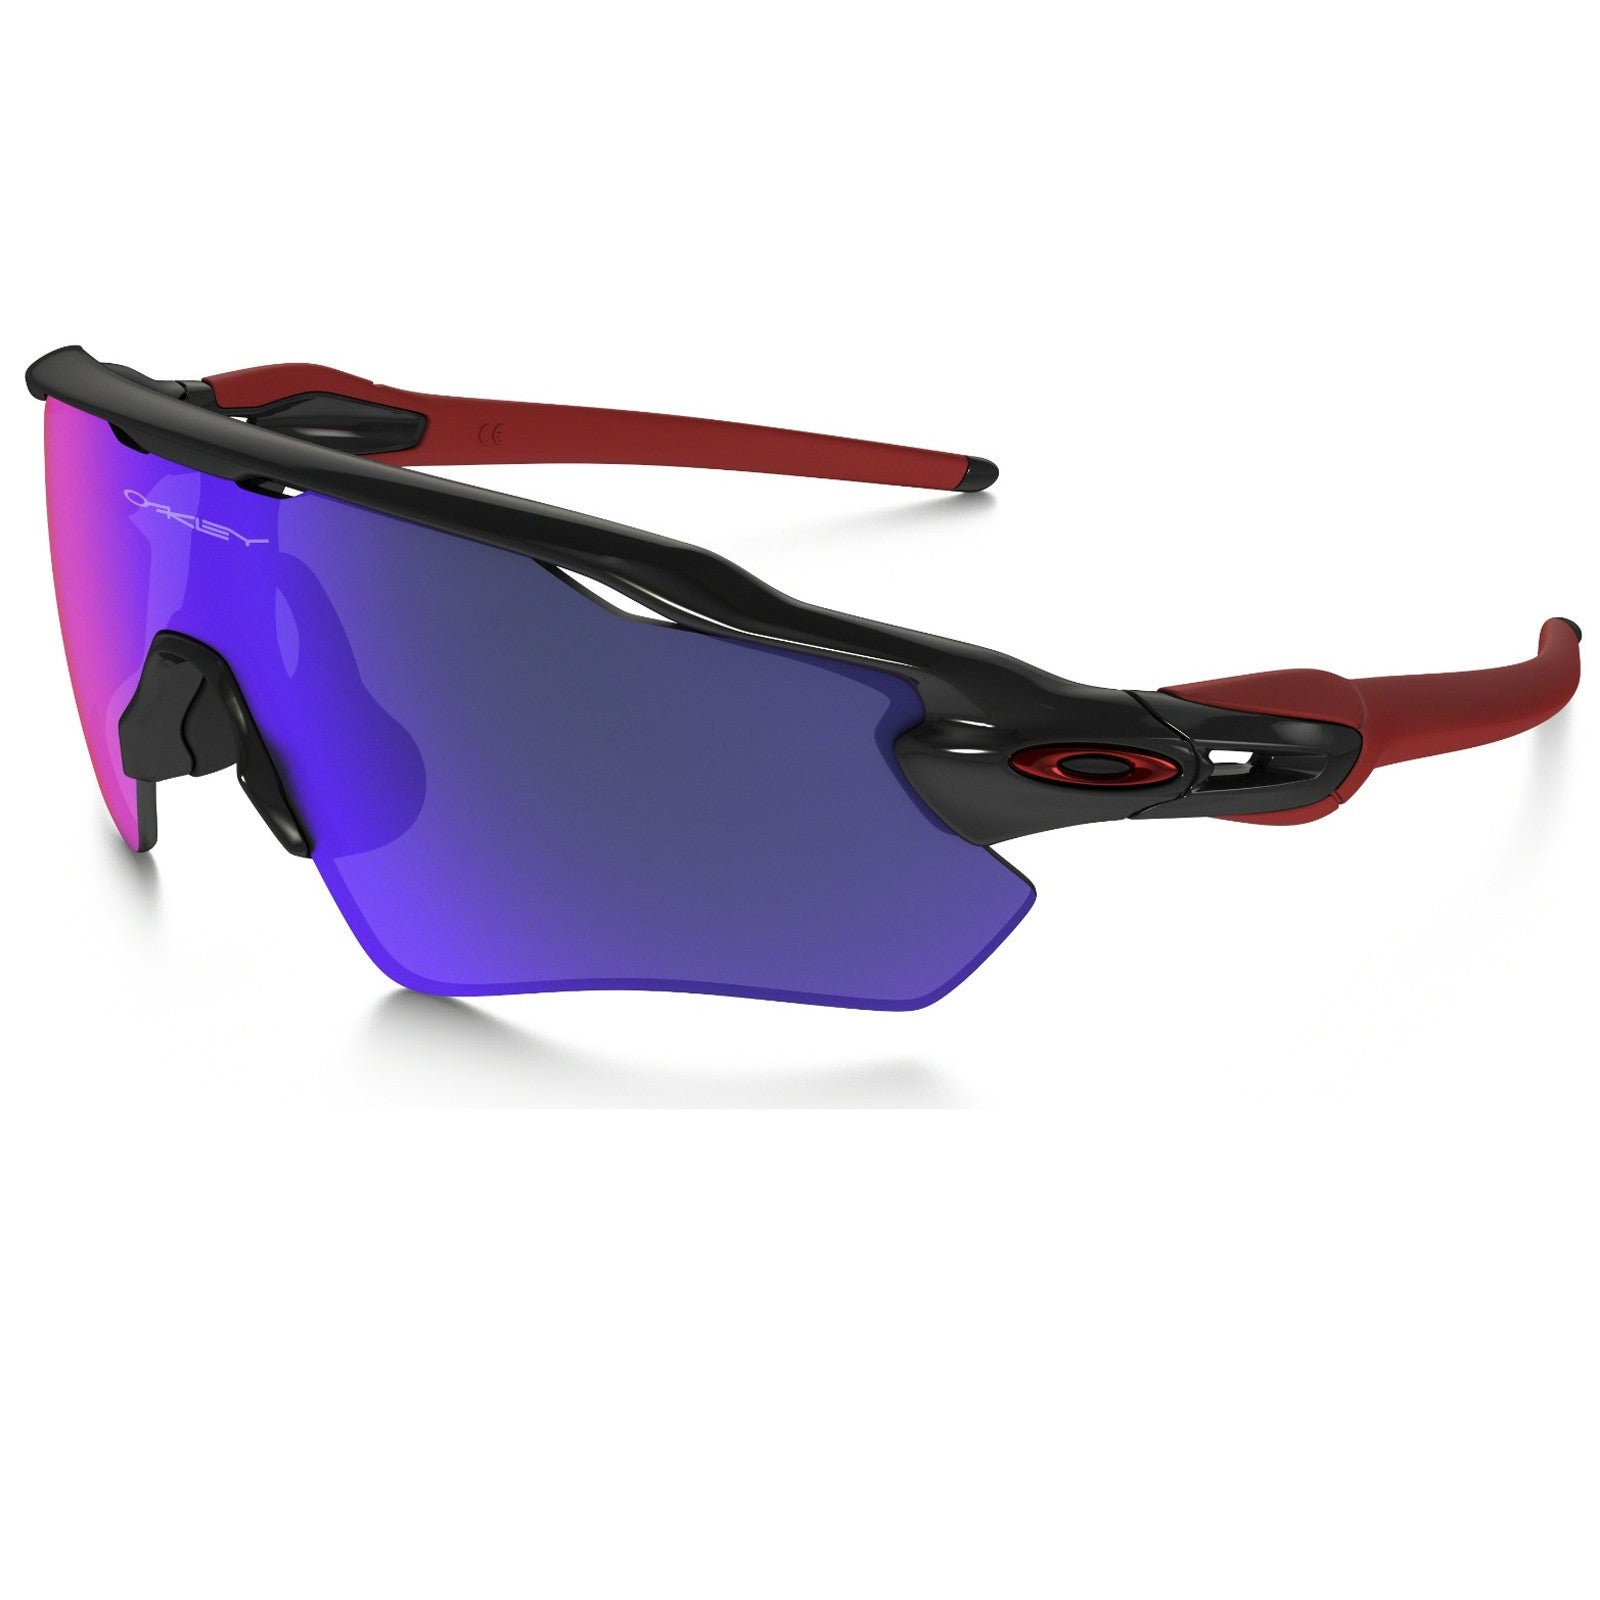 OAKLEY RADAR EV PATH 920821 POLISHED BLACK